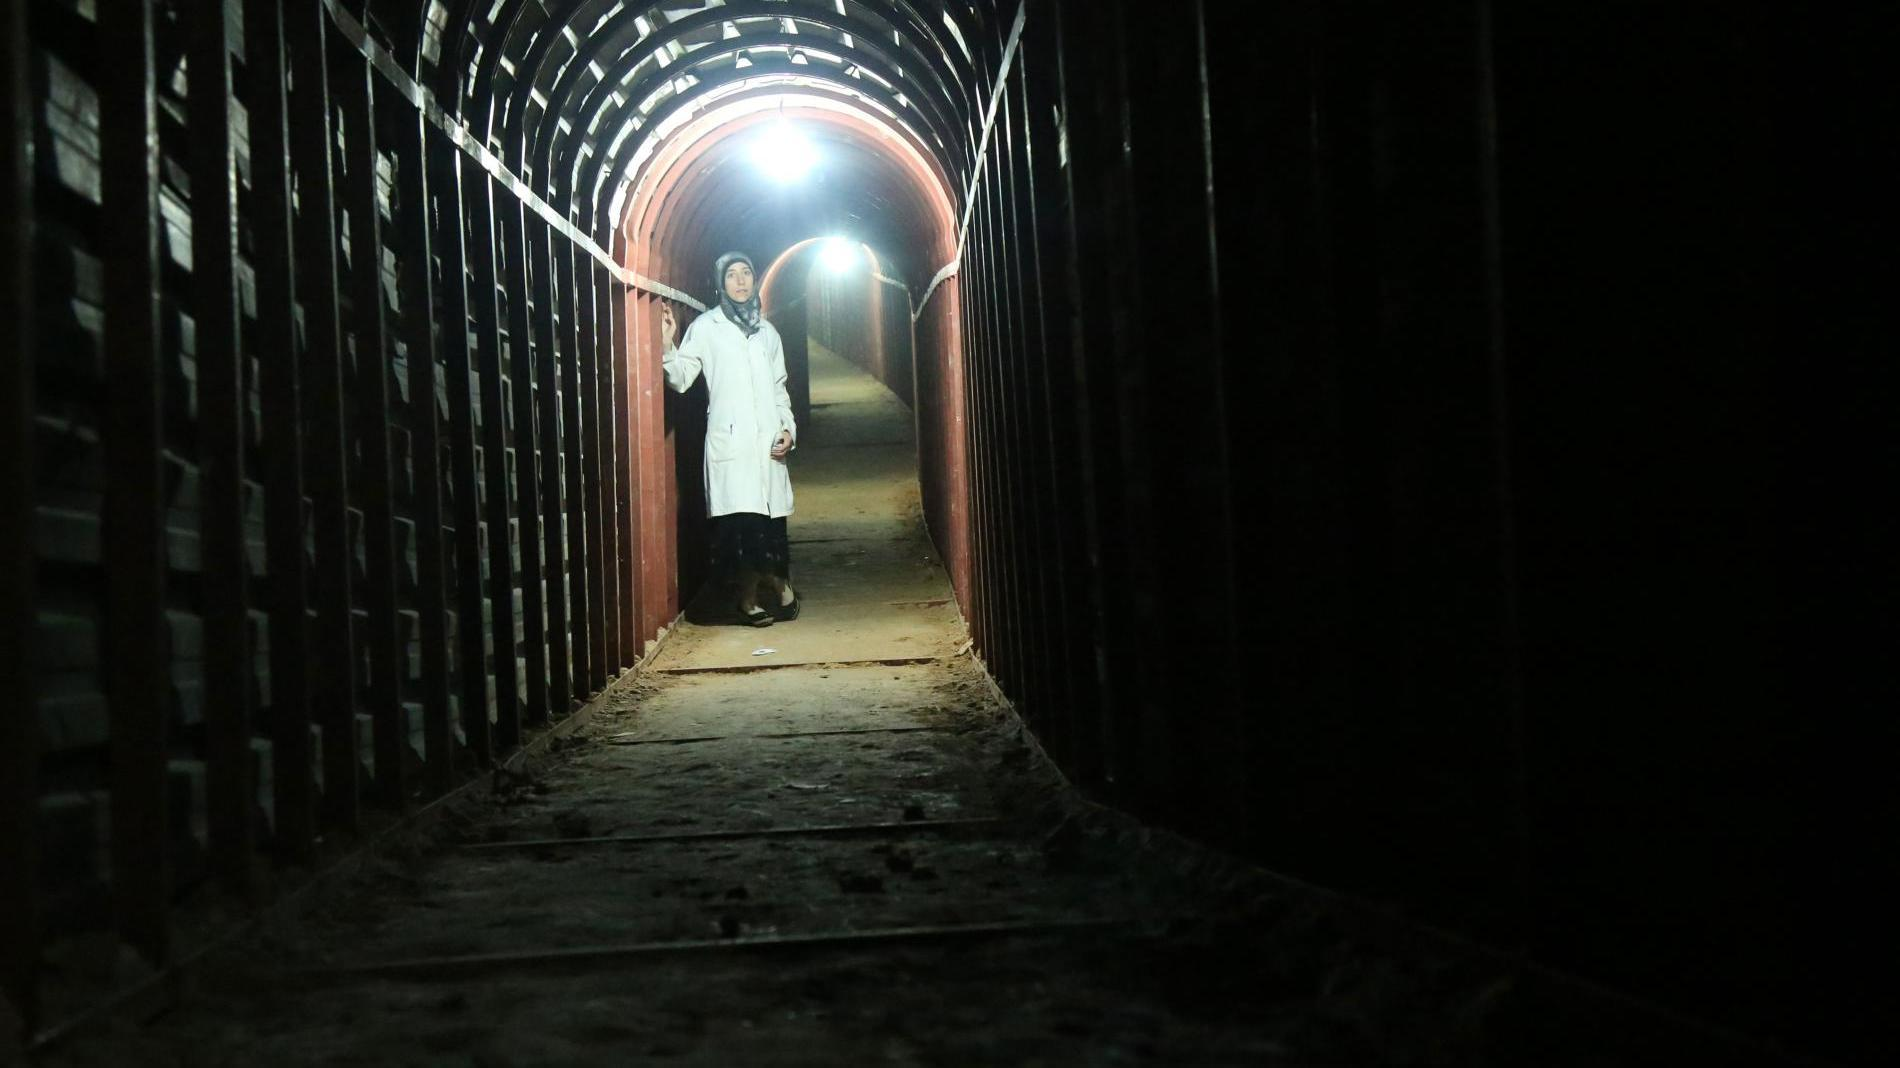 Al Ghouta, Syria - Dr. Amani in the underground tunnels. (Photo by National Geographic)